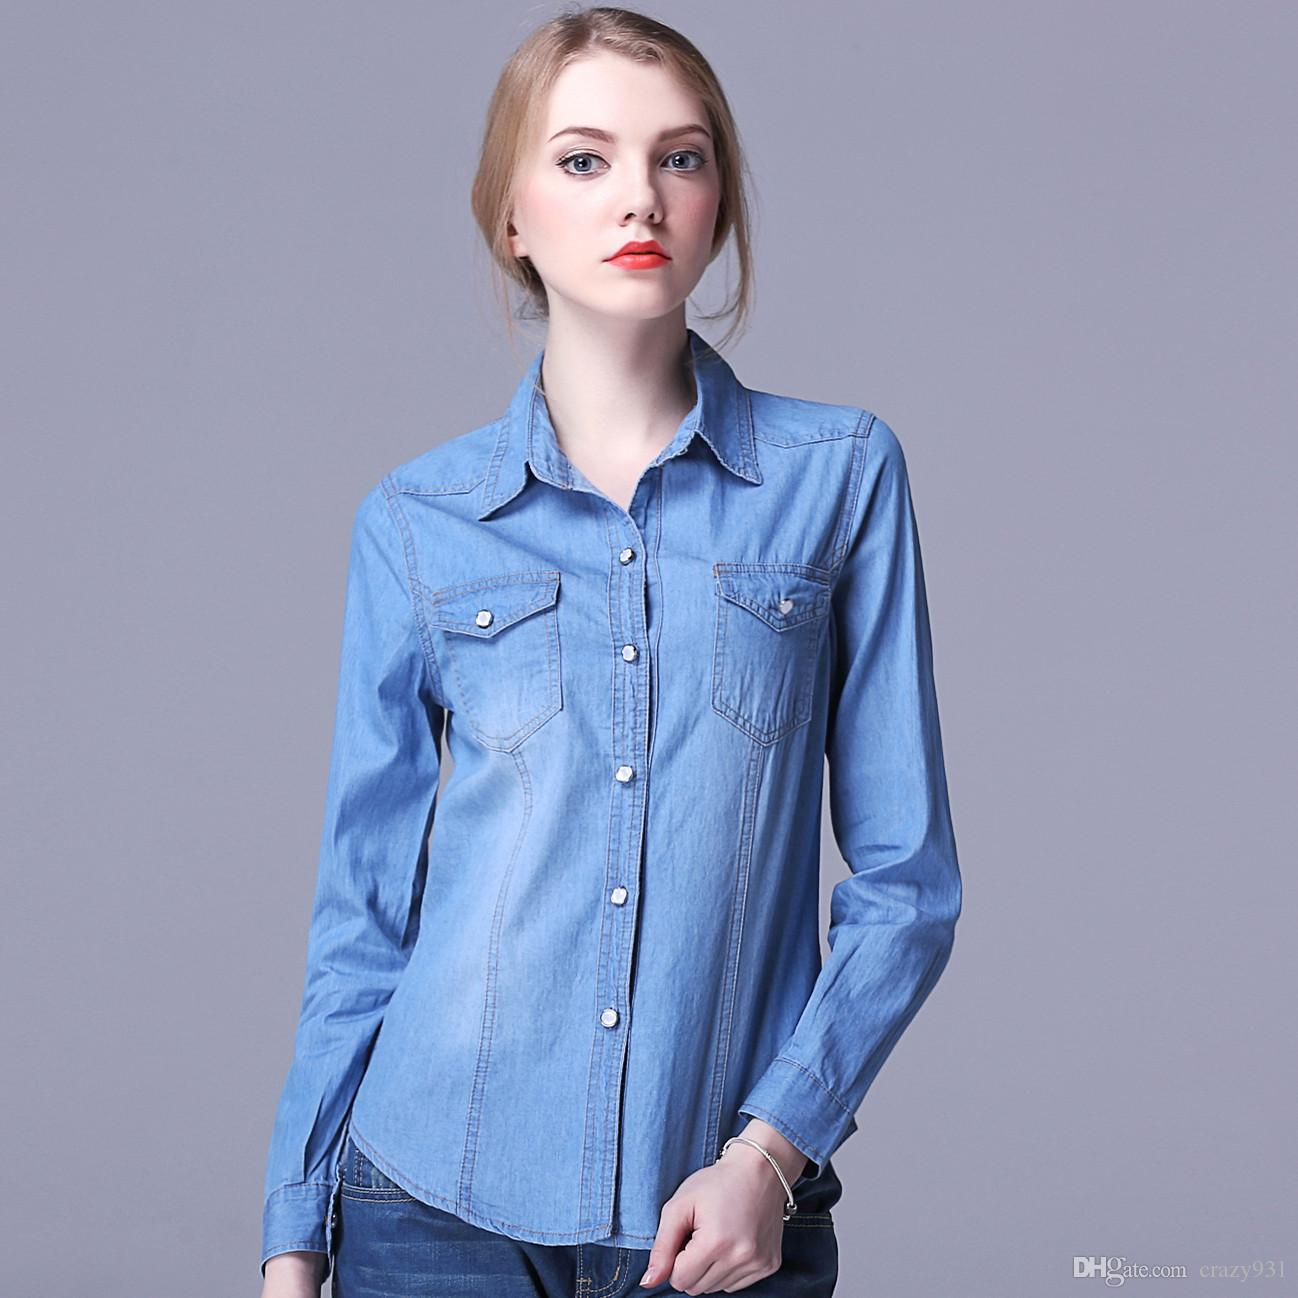 2019 Wholesale Women Fashion Casual Denim Shirts Leisure Fitness Jeans  Shirt Long Sleeve Blue Demin Cowboy Blouses Camisa Masculina From Crazy931 fe24862cb